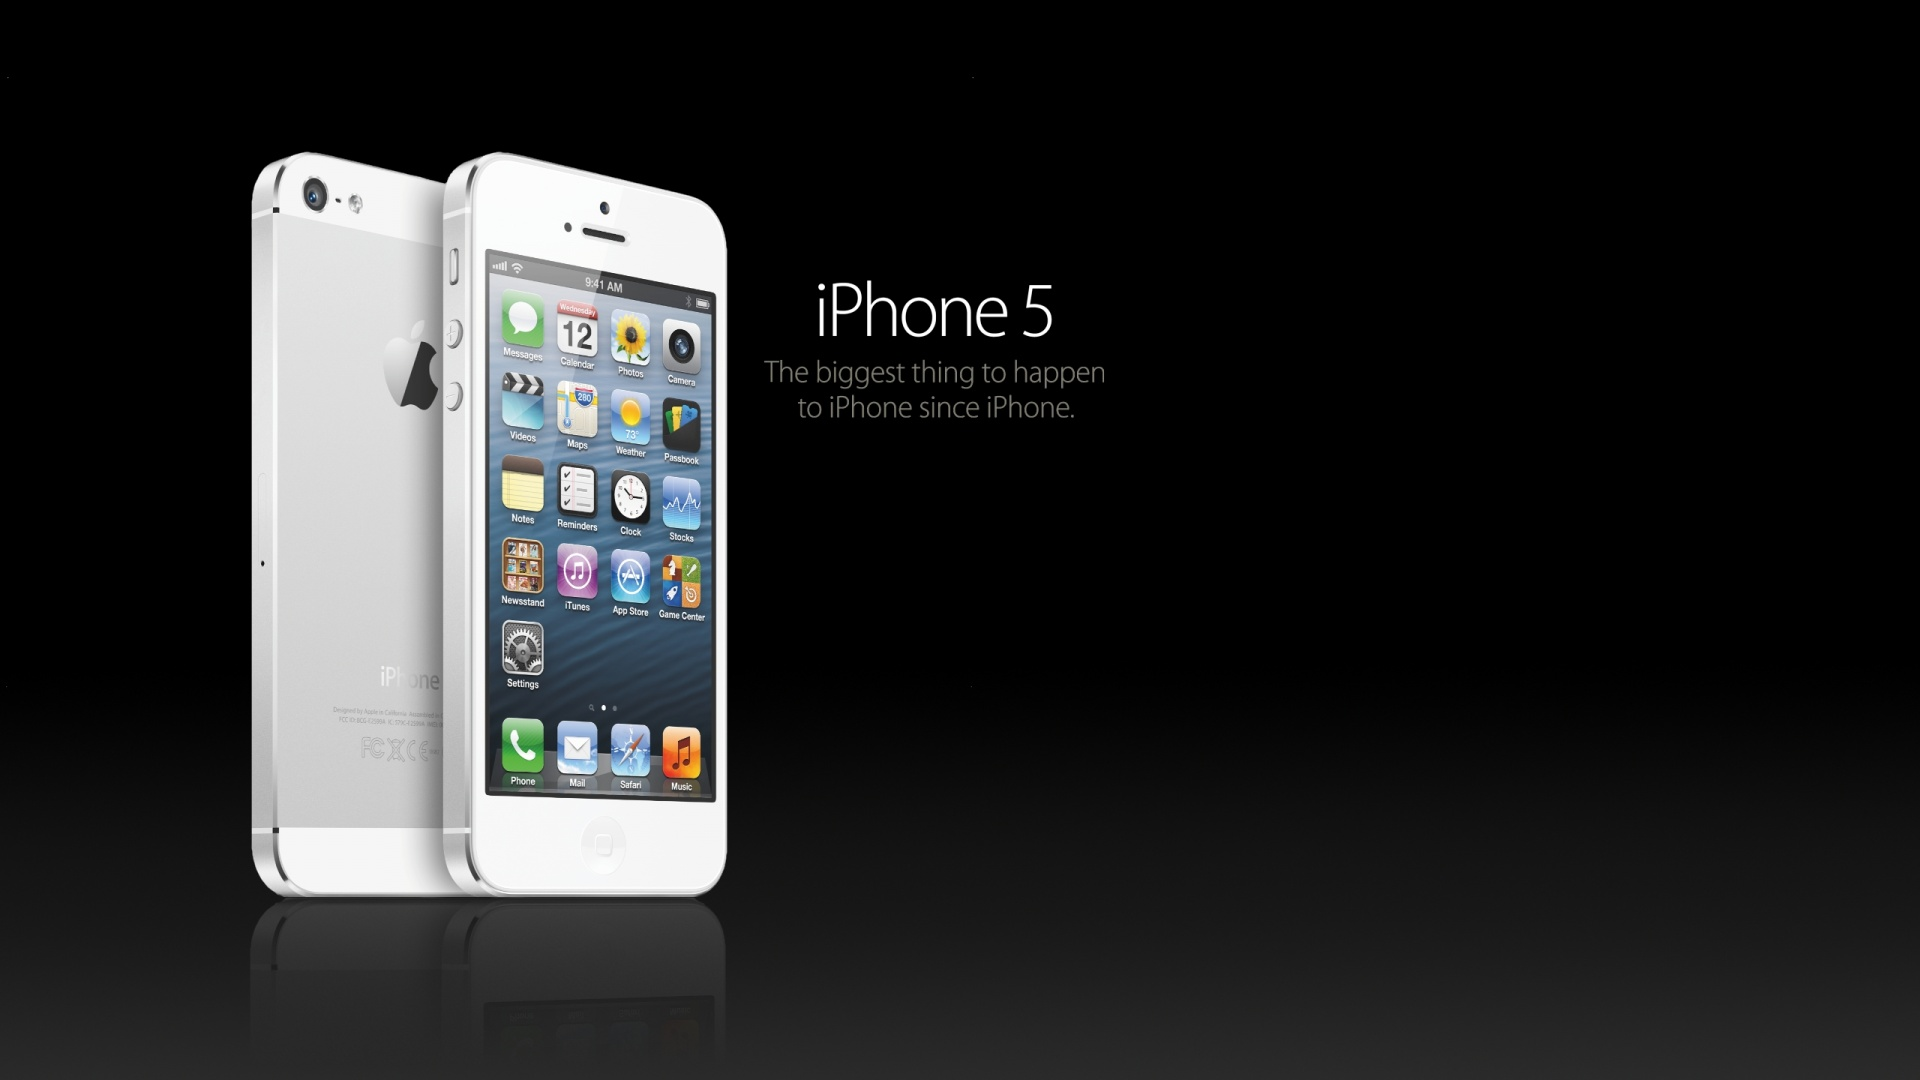 iPhone 5 White HD Wallpaper | ImageBank.biz